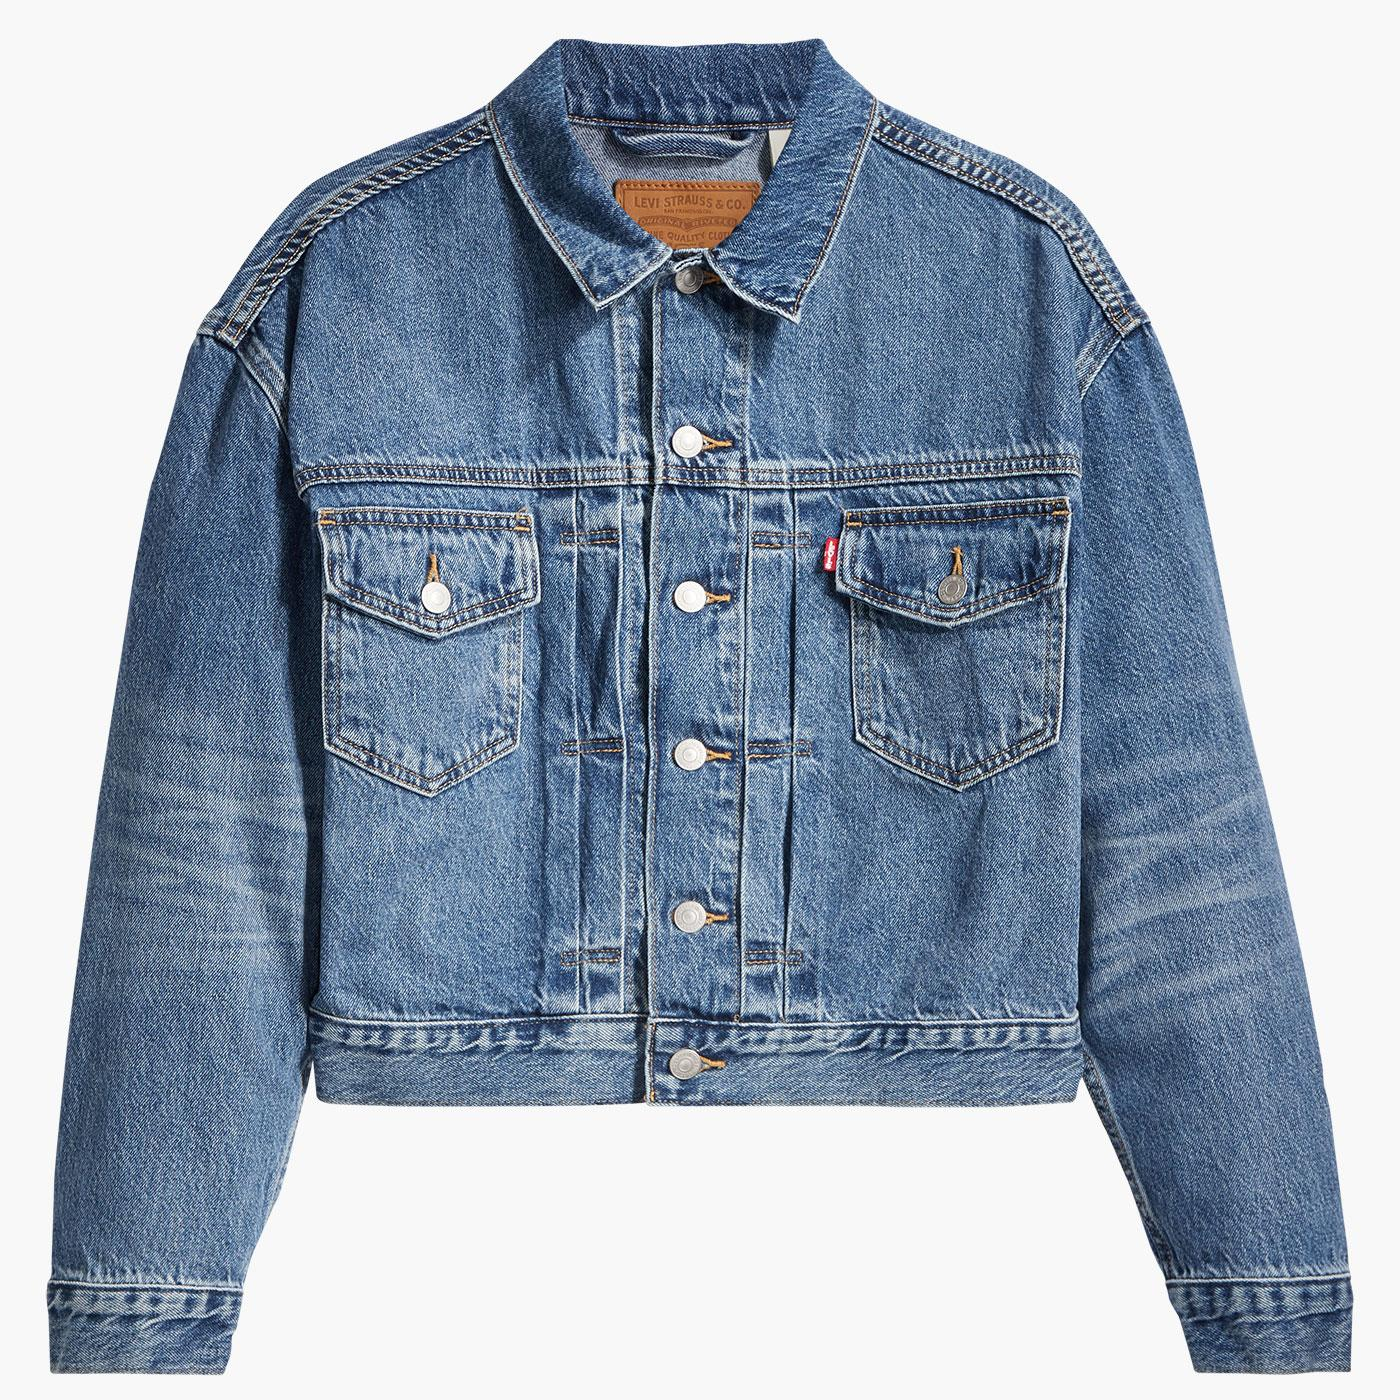 LEVI'S Women's New Heritage Trucker Denim Jacket